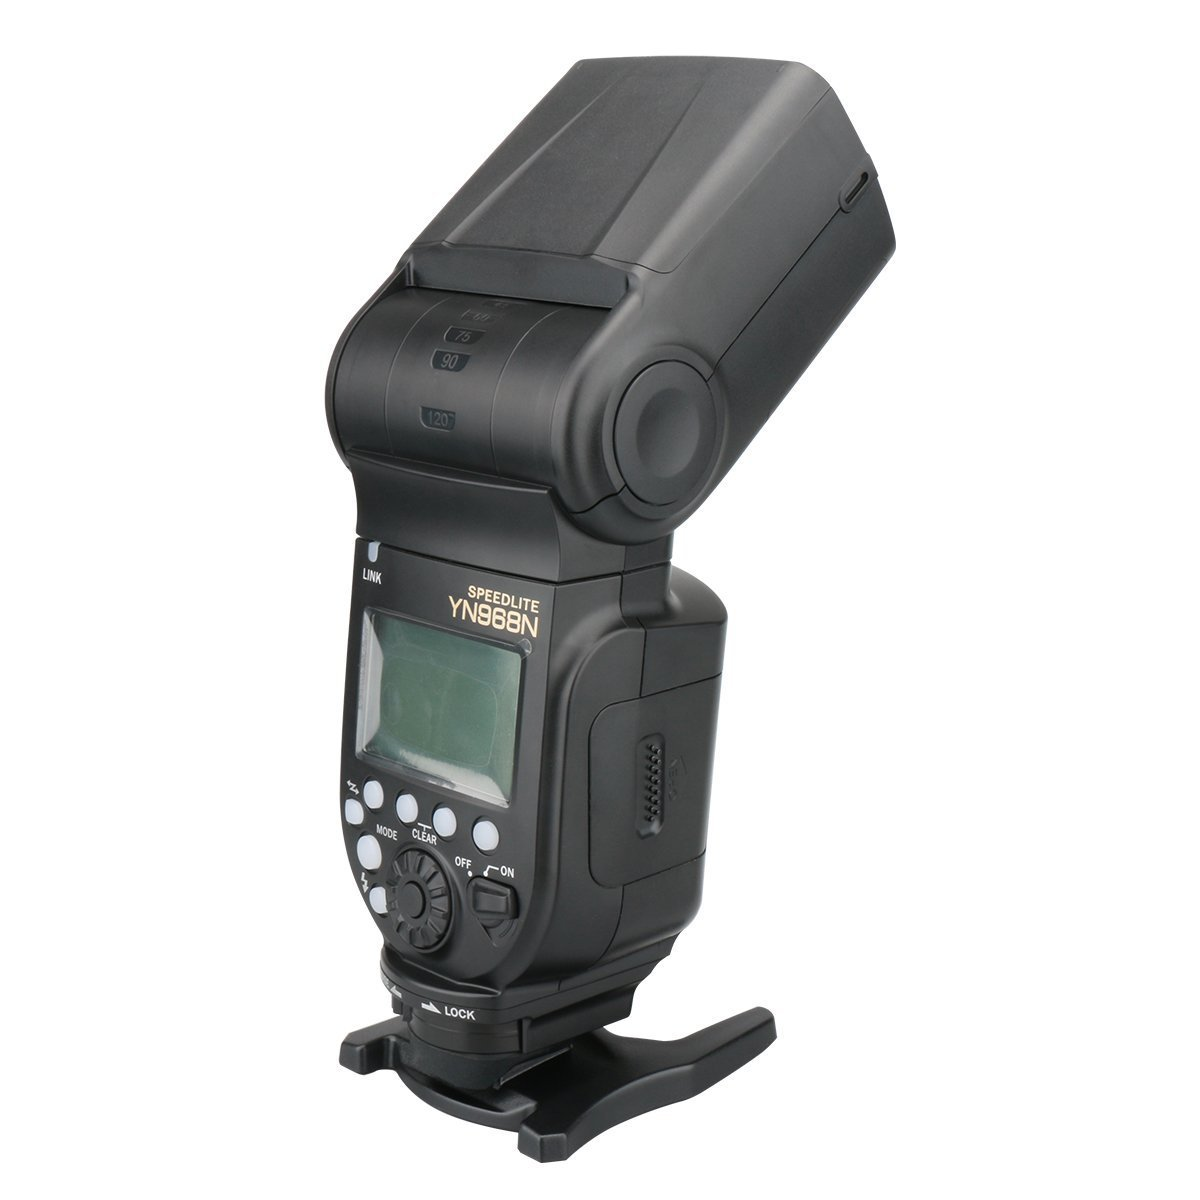 YONGNUO YN968N Wireless Flash Speedlite High-speed Sync TTL 1/8000 for Nikon with WINGONEER Diffuser